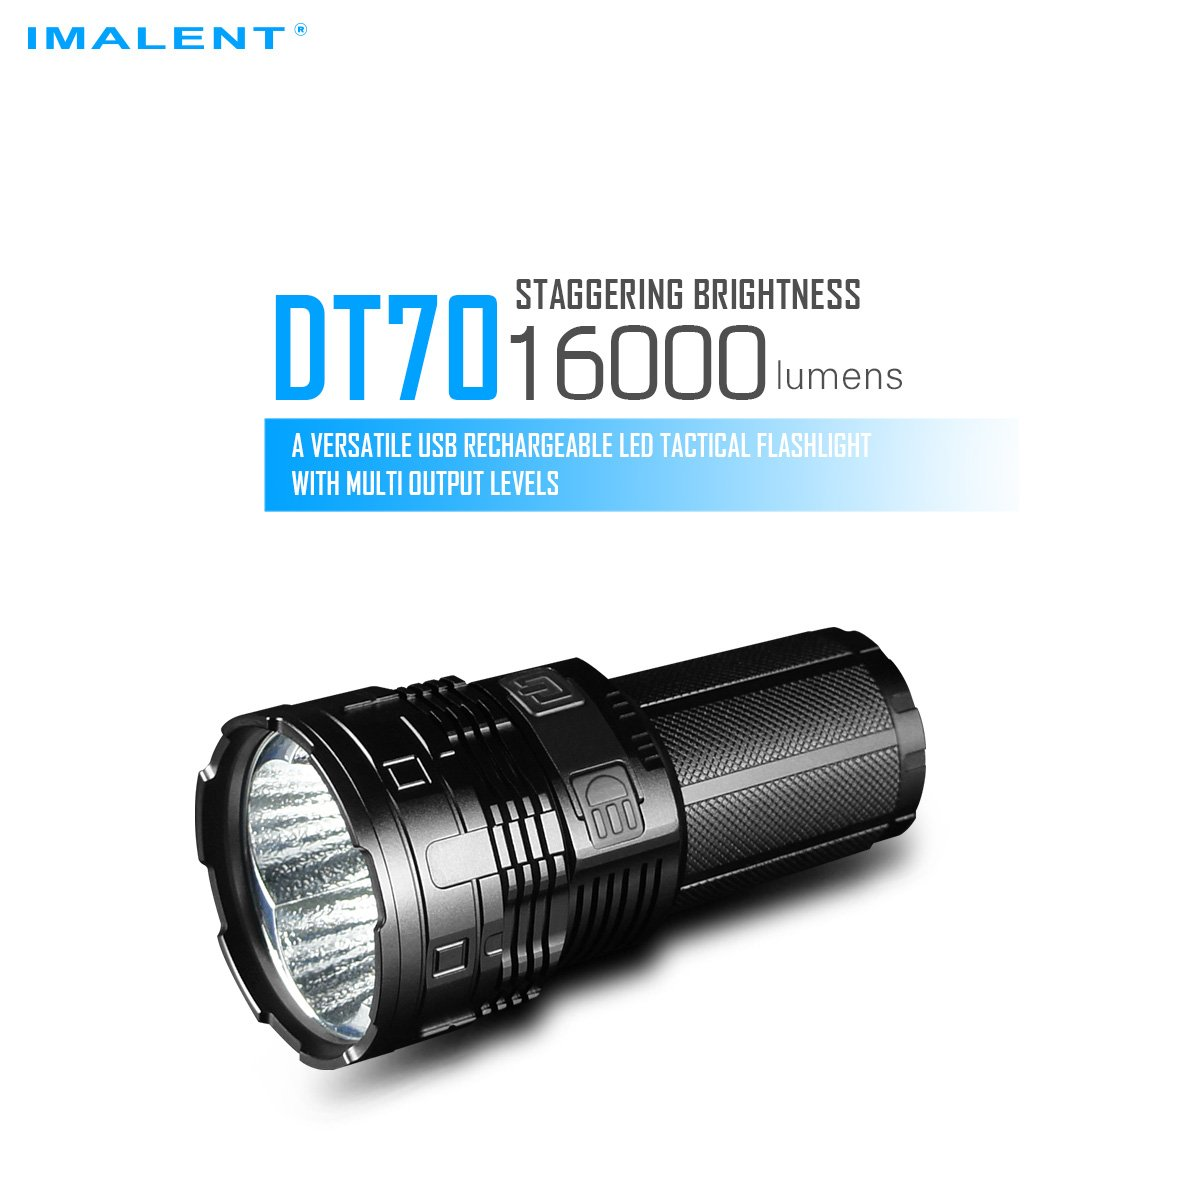 IMALENT DT70 XHP70 LED versatile USB rechargeable LED tactical flashlight 16000lumens high powerful searchlight B07DH67QMN